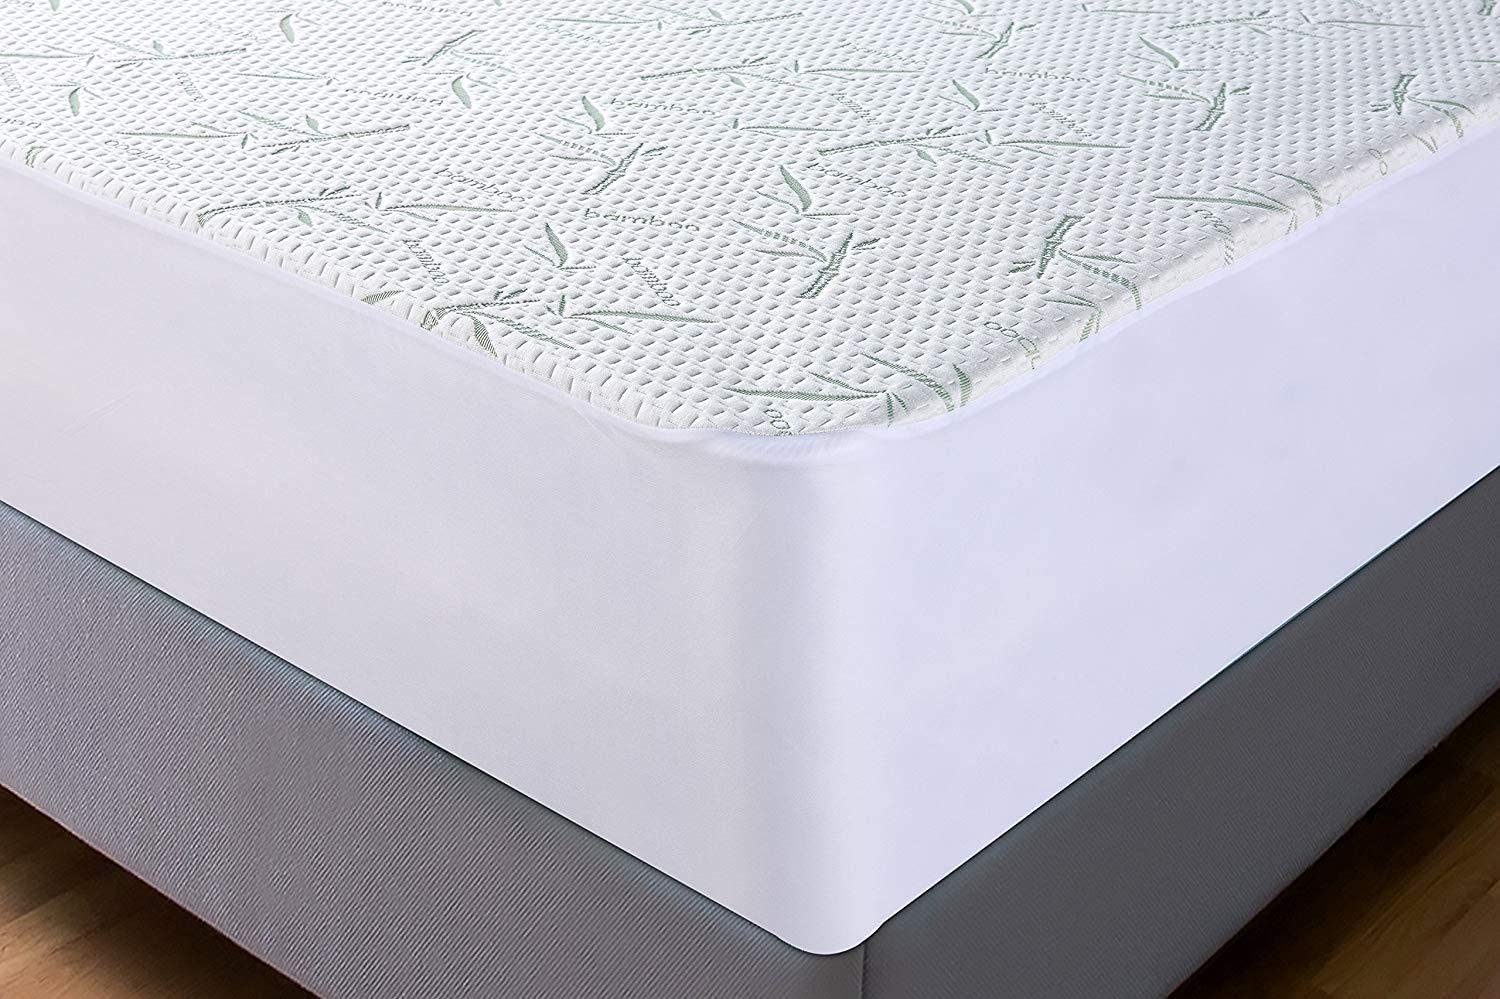 Mattress Protector Waterproof Bamboo Soft Hypoallergenic Fitted Pad Cover 5 size